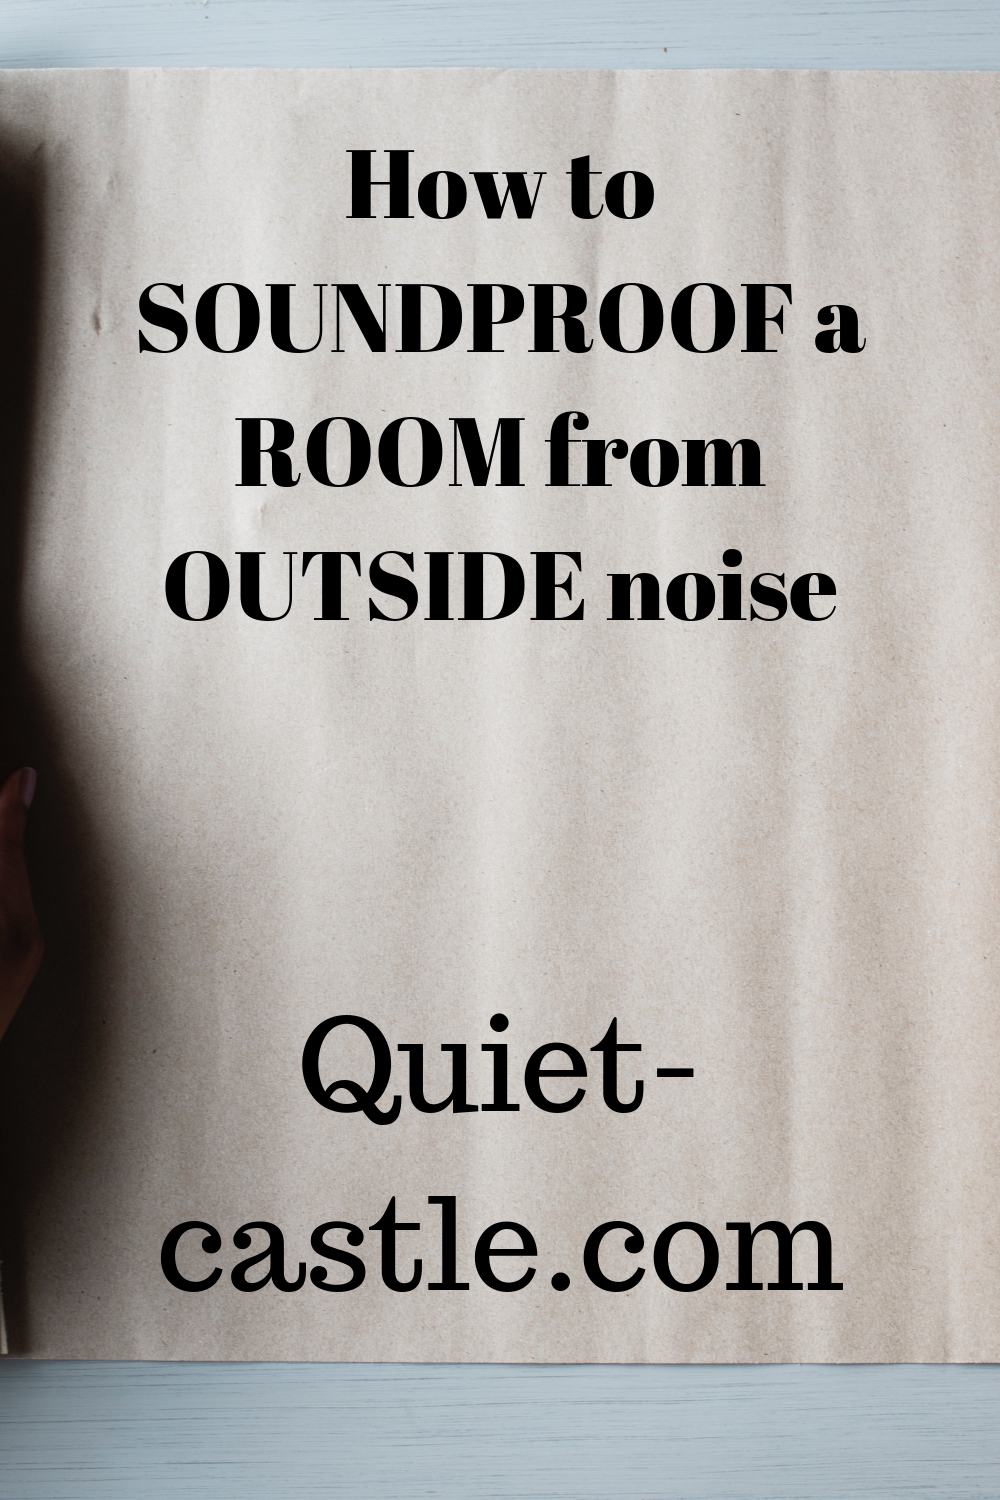 How to soundproof a room from outside noise Sound